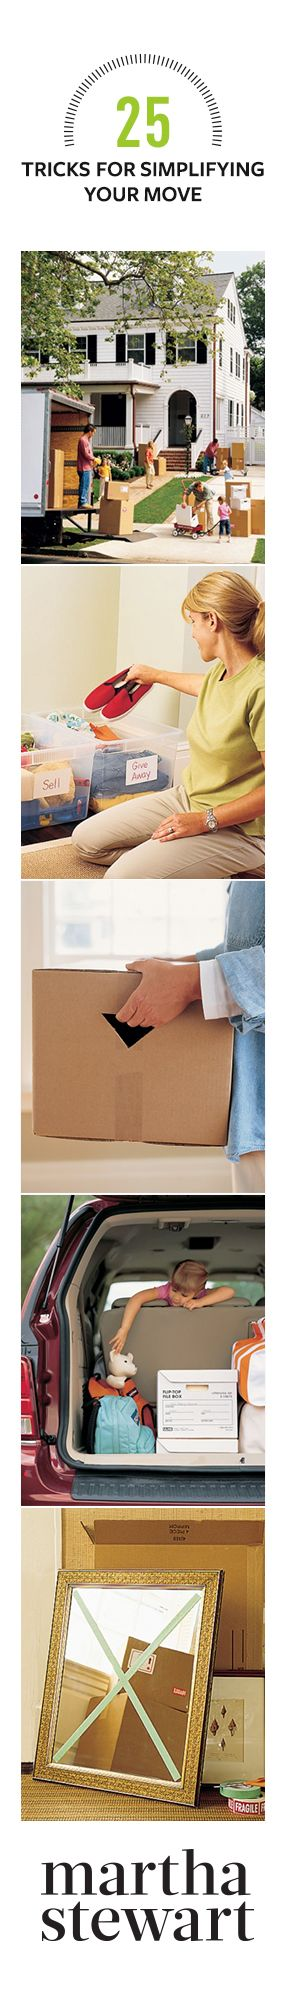 25 Tricks for Simplifying Your Move.  @Sara Bracken get ready friend. We are gonna get-to-work!